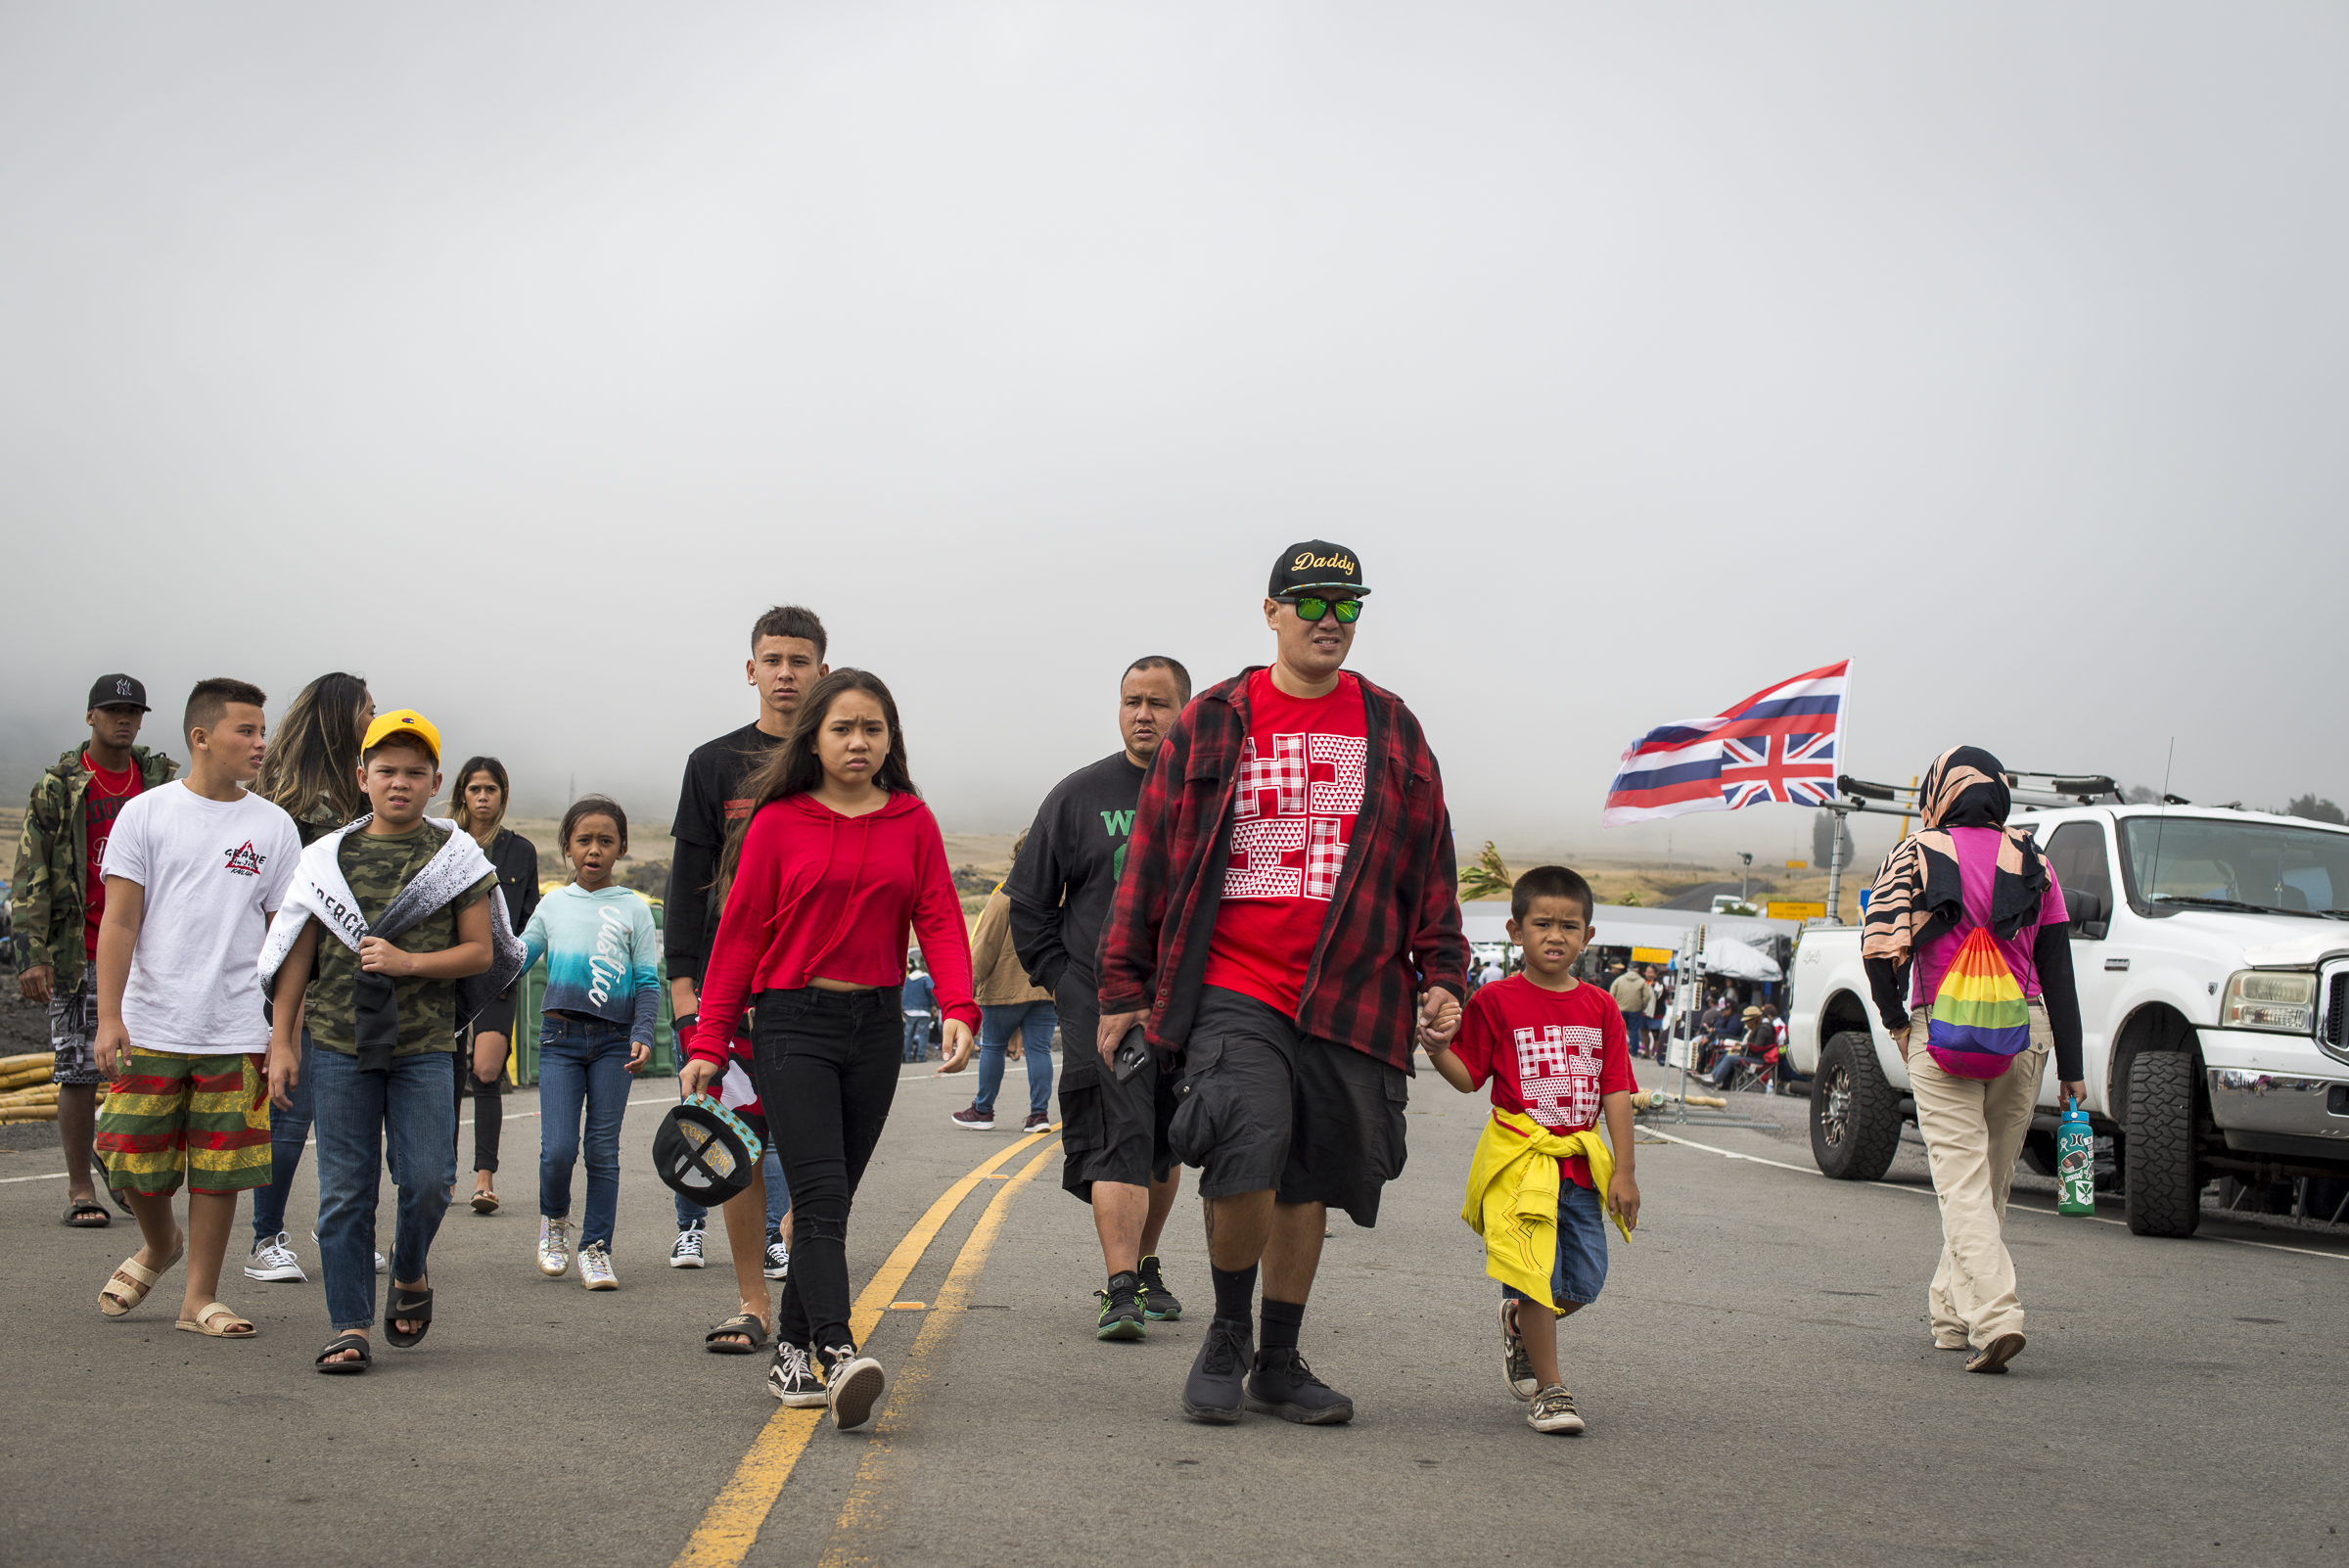 <p>New arrivals Friday at Pu'uhuluhulu, where activists have stressed a nonviolent approach to their blockage of the Mauna Kea Access Road.</p>